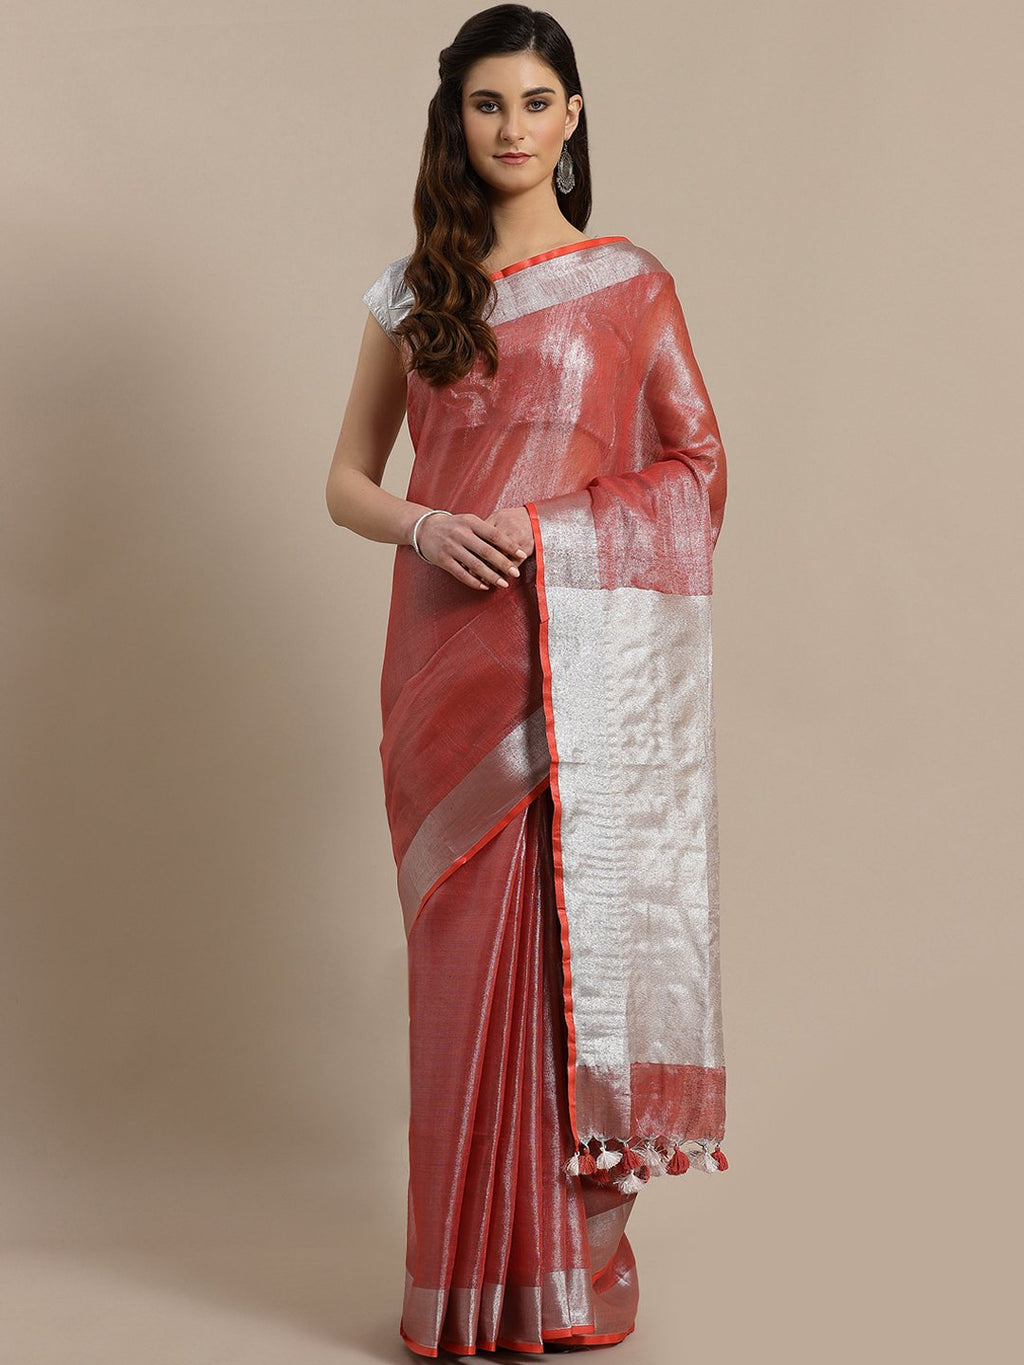 Red Silver Dual-ToneHandwoven Handcrafted Solid Saree-Saree-Kalakari India-ALBGSA0008-Hand Woven, Sarees, Sustainable Fabrics, Tissue, Traditional Weave-[Linen,Ethnic,wear,Fashionista,Handloom,Handicraft,Indigo,blockprint,block,print,Cotton,Chanderi,Blue, latest,classy,party,bollywood,trendy,summer,style,traditional,formal,elegant,unique,style,hand,block,print, dabu,booti,gift,present,glamorous,affordable,collectible,Sari,Saree,printed, holi, Diwali, birthday, anniversary, sustainable, organic,